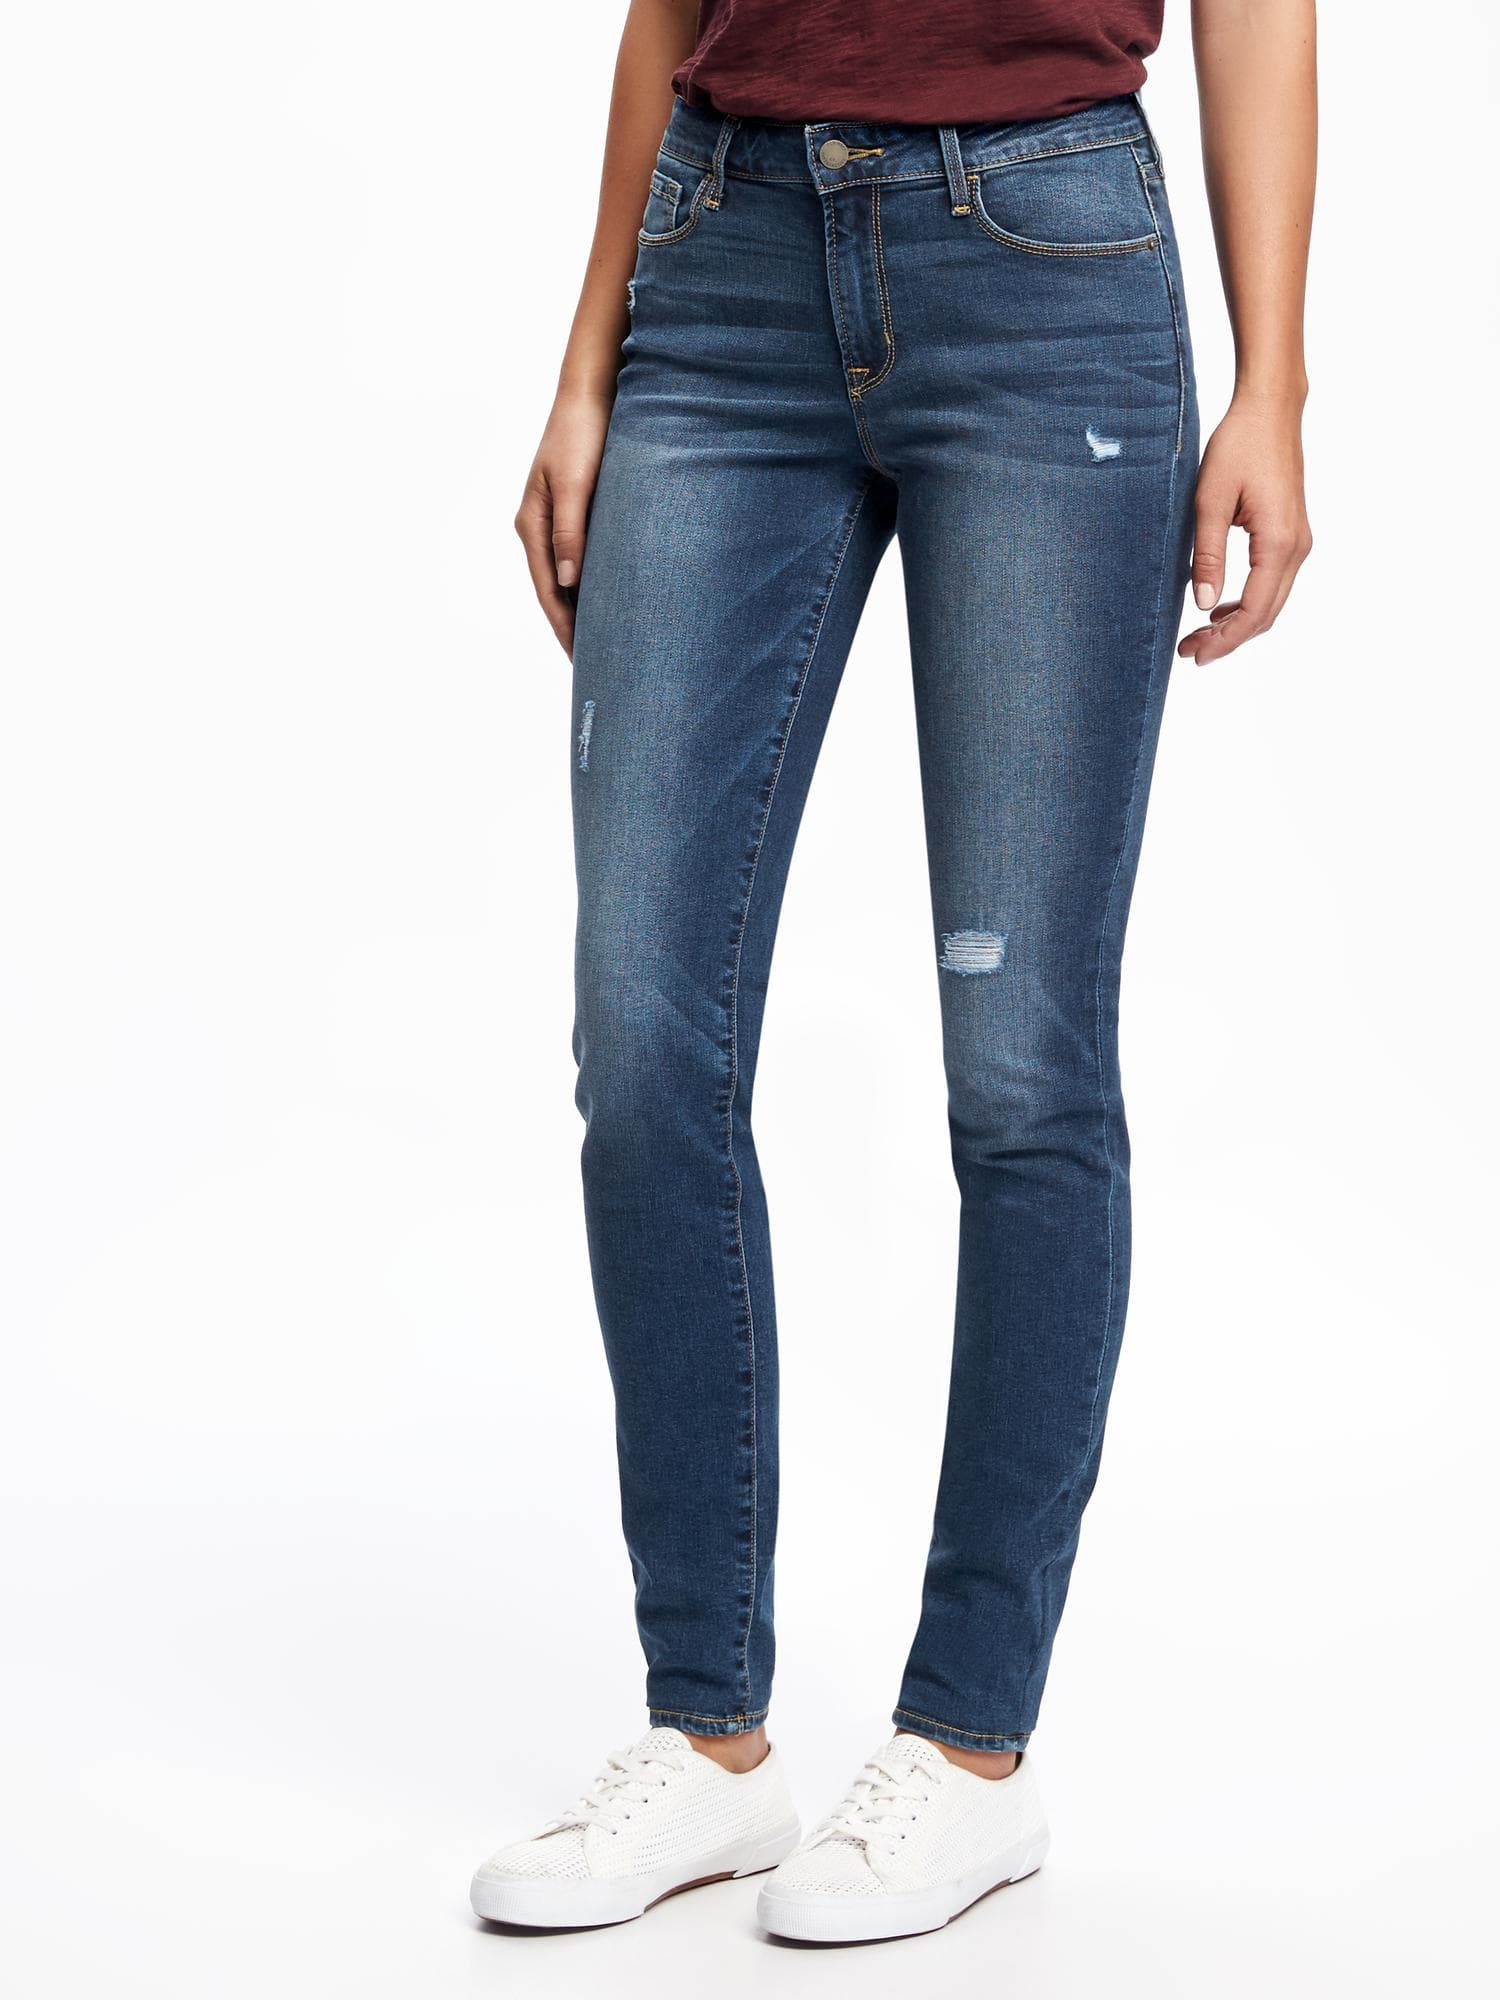 f1c27cdd9d1 These Are the Most Flattering Jeans for Under $100